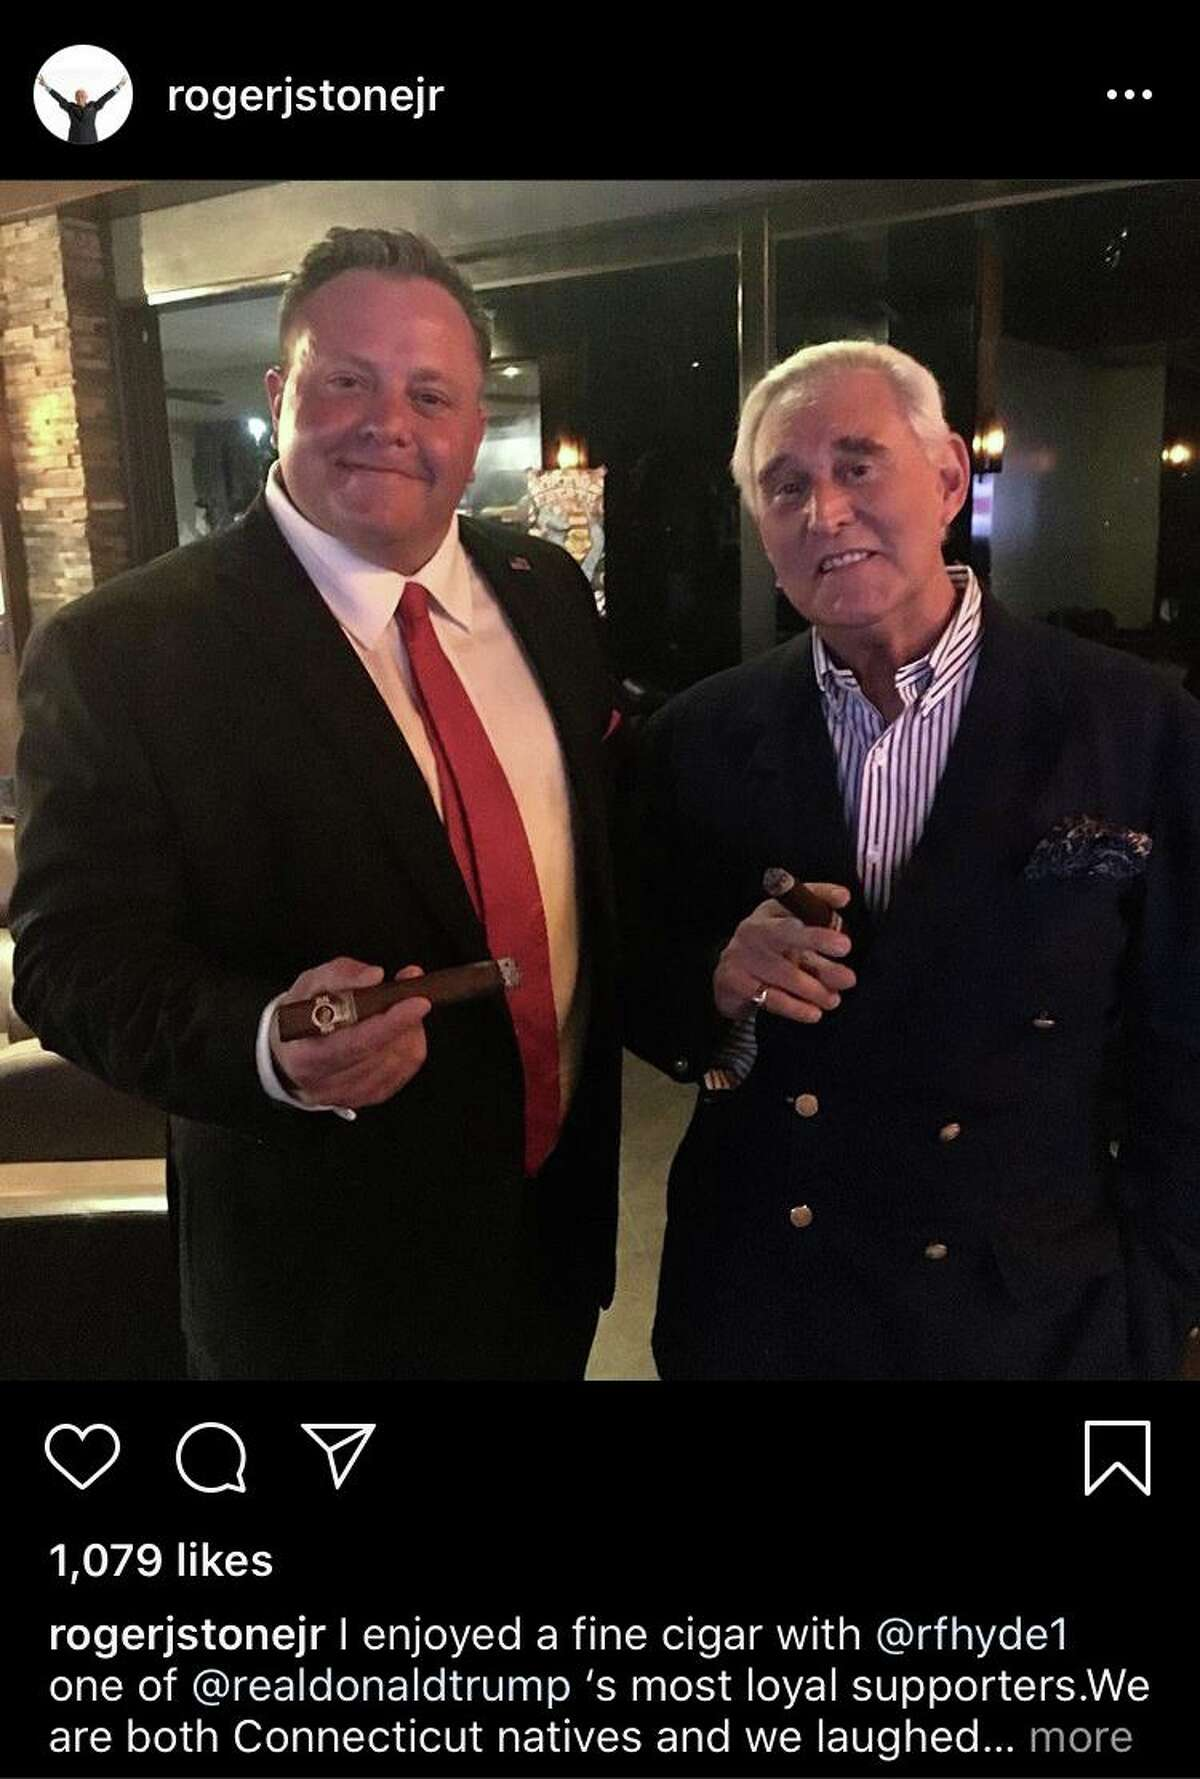 Roger Stone (right), a Trump ally convicted of lying to Congress, posted this photo on Instagram with Robert Hyde (left), a Republican running for Congress in Connecticut's 5th District, in May 2019. Stone was born in Norwalk, Conn.